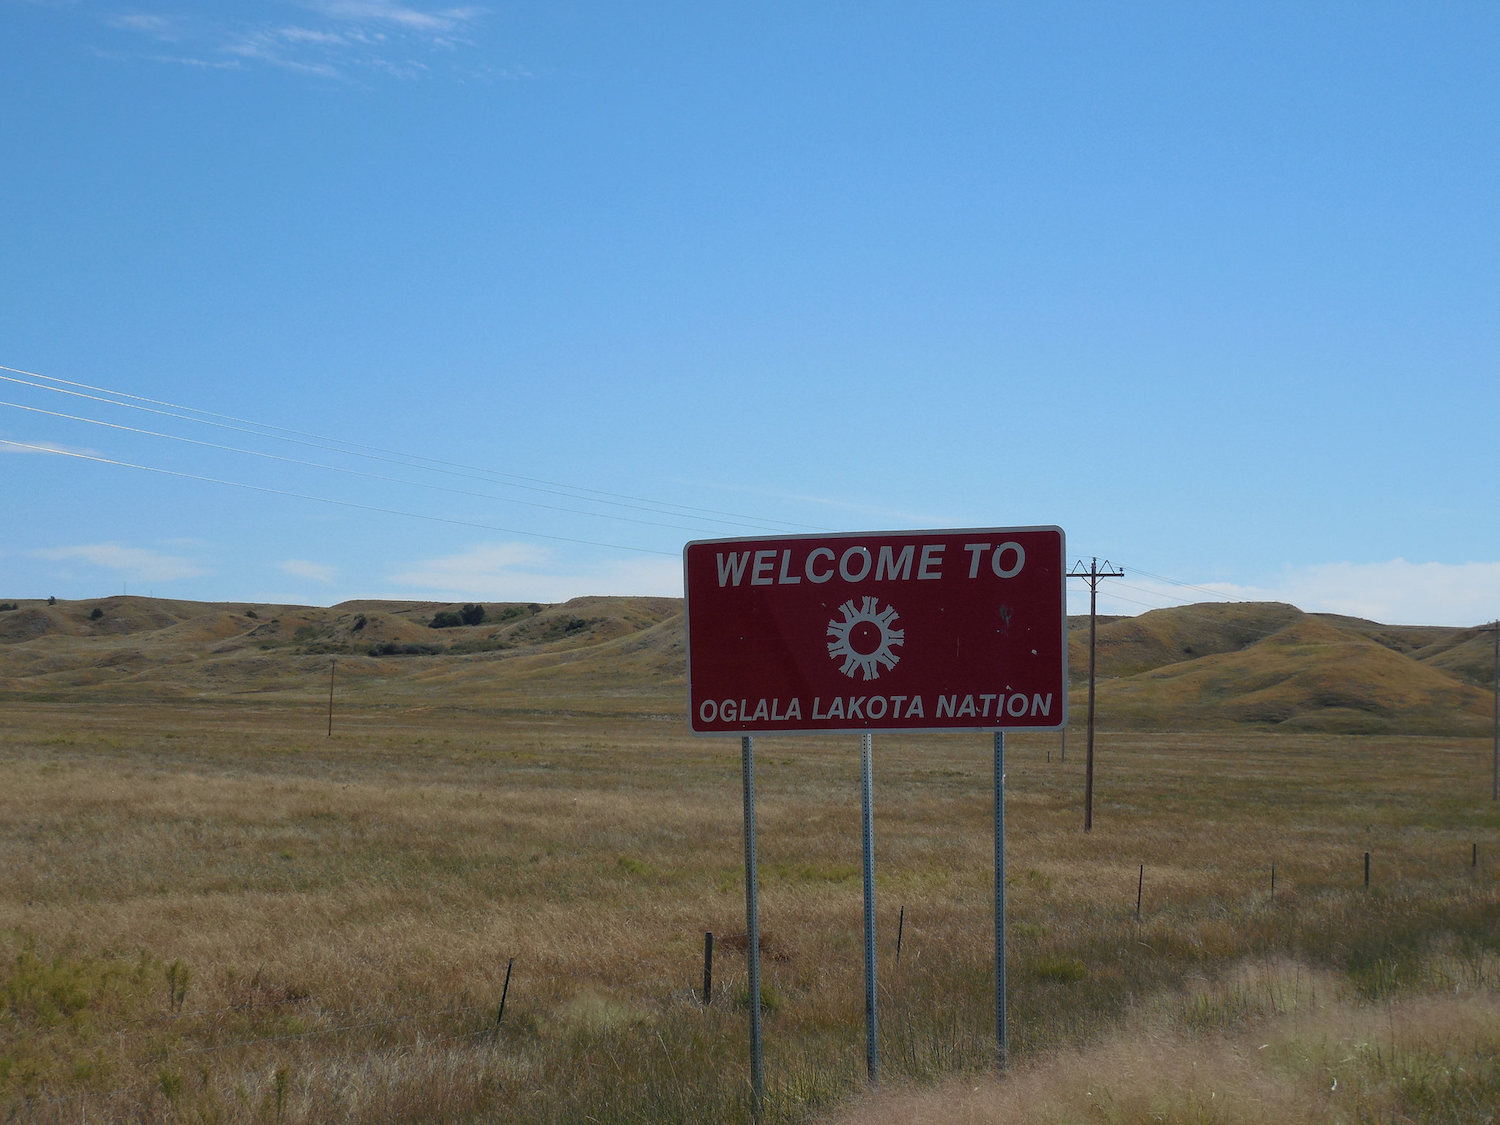 'We're going to practice our sovereign rights': Oglala Sioux Tribe enters new era with cannabis vote